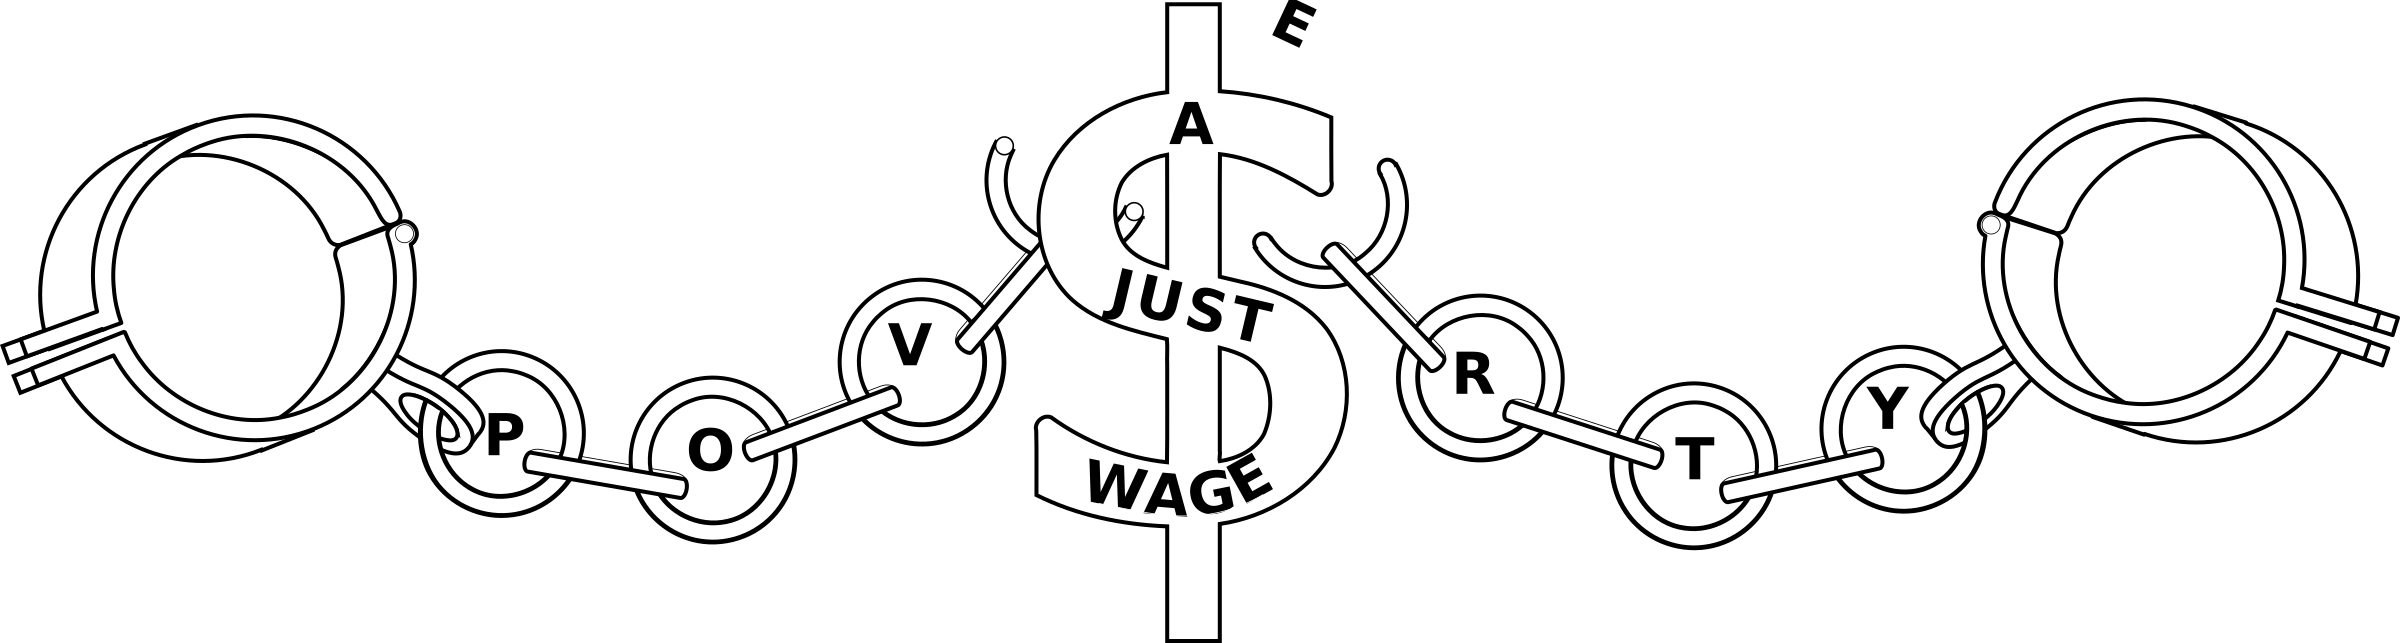 a fair wage breaking poverty shackles by pjsvbfcm